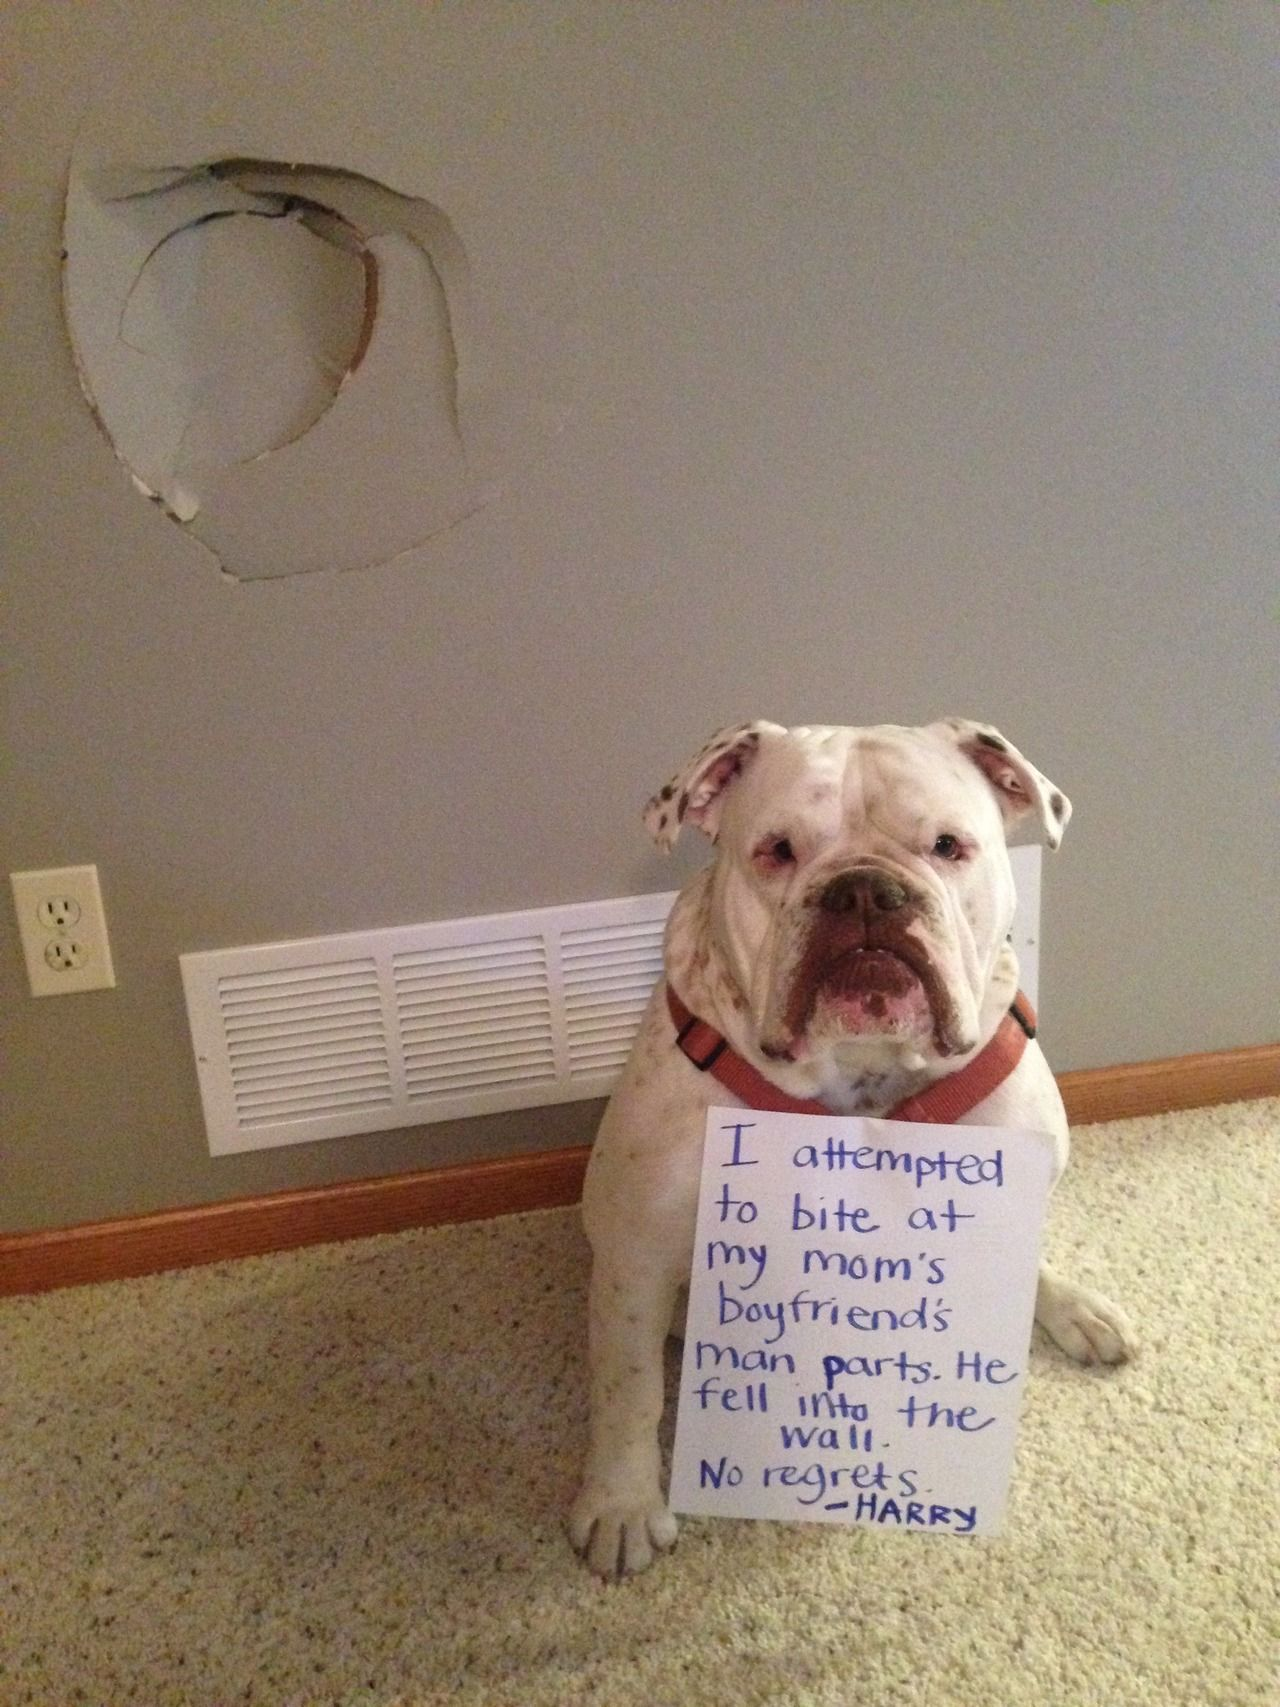 12Crucial Mistakes That Shorten Our Pets' Lives